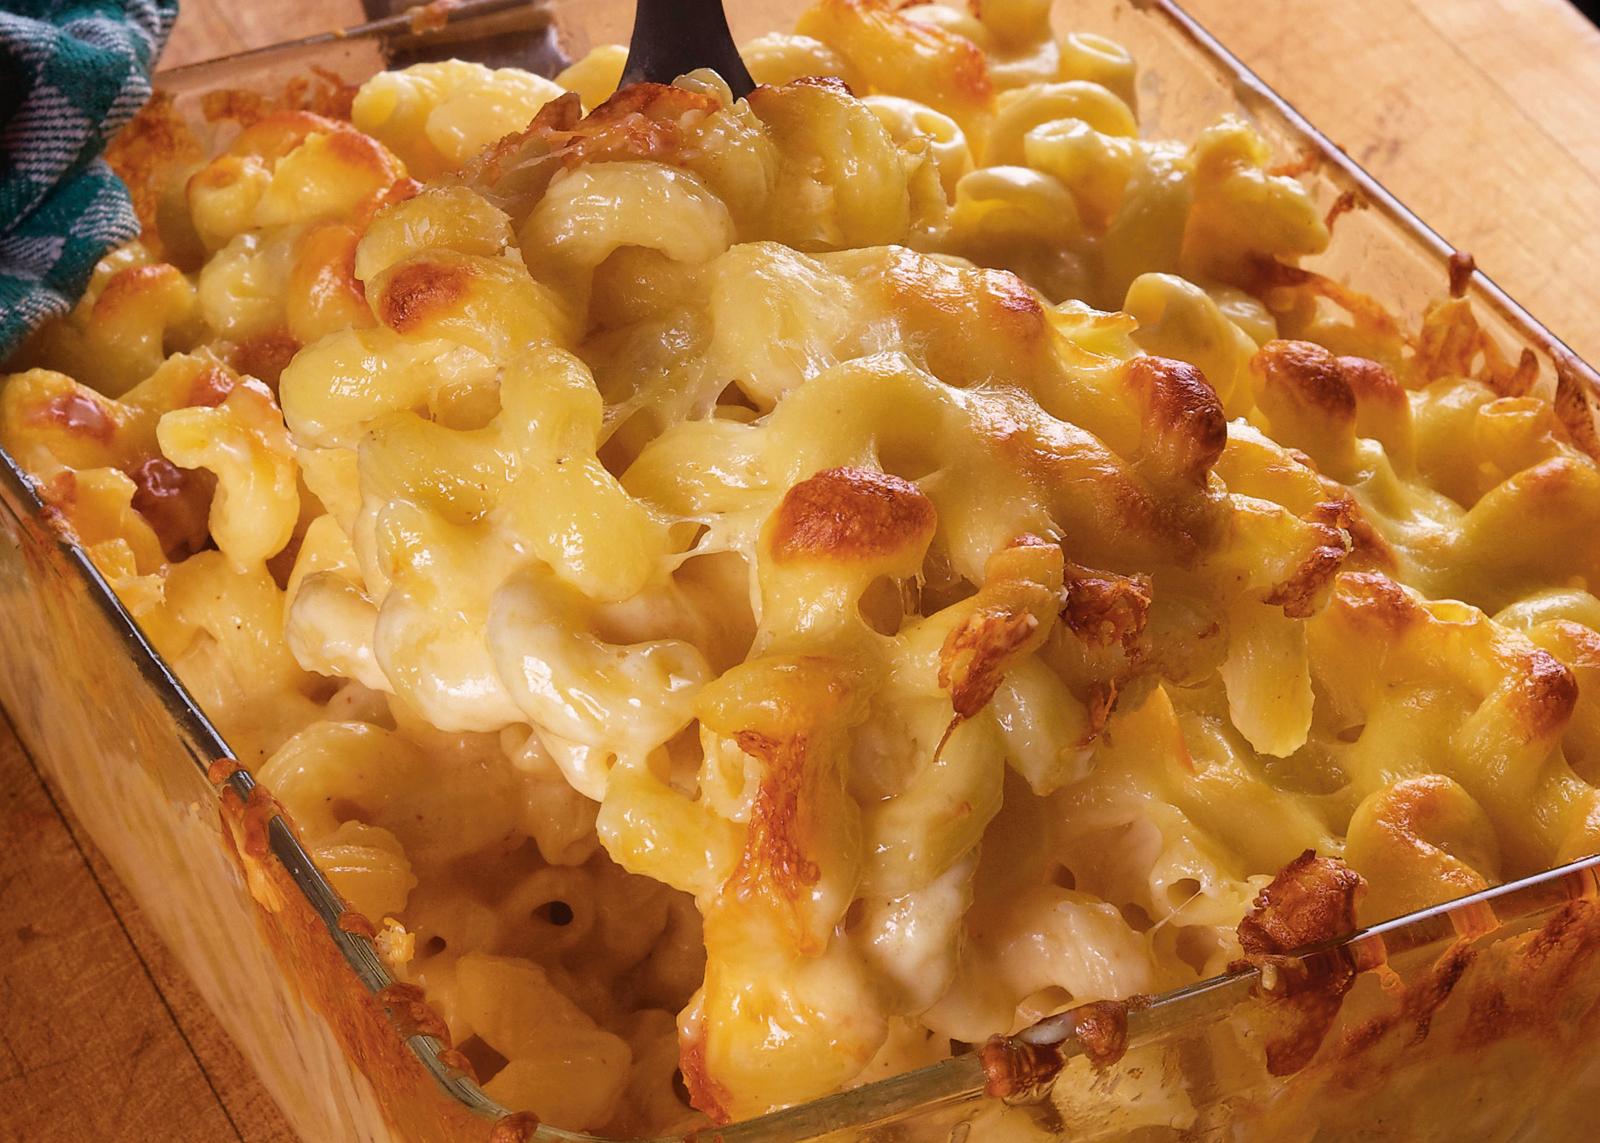 mac cheese Creamy macaroni and cheese casserole is easy to make from scratch sharp cheddar & loads of cheesy sauce make this my favorite cream mac and cheese recipe.